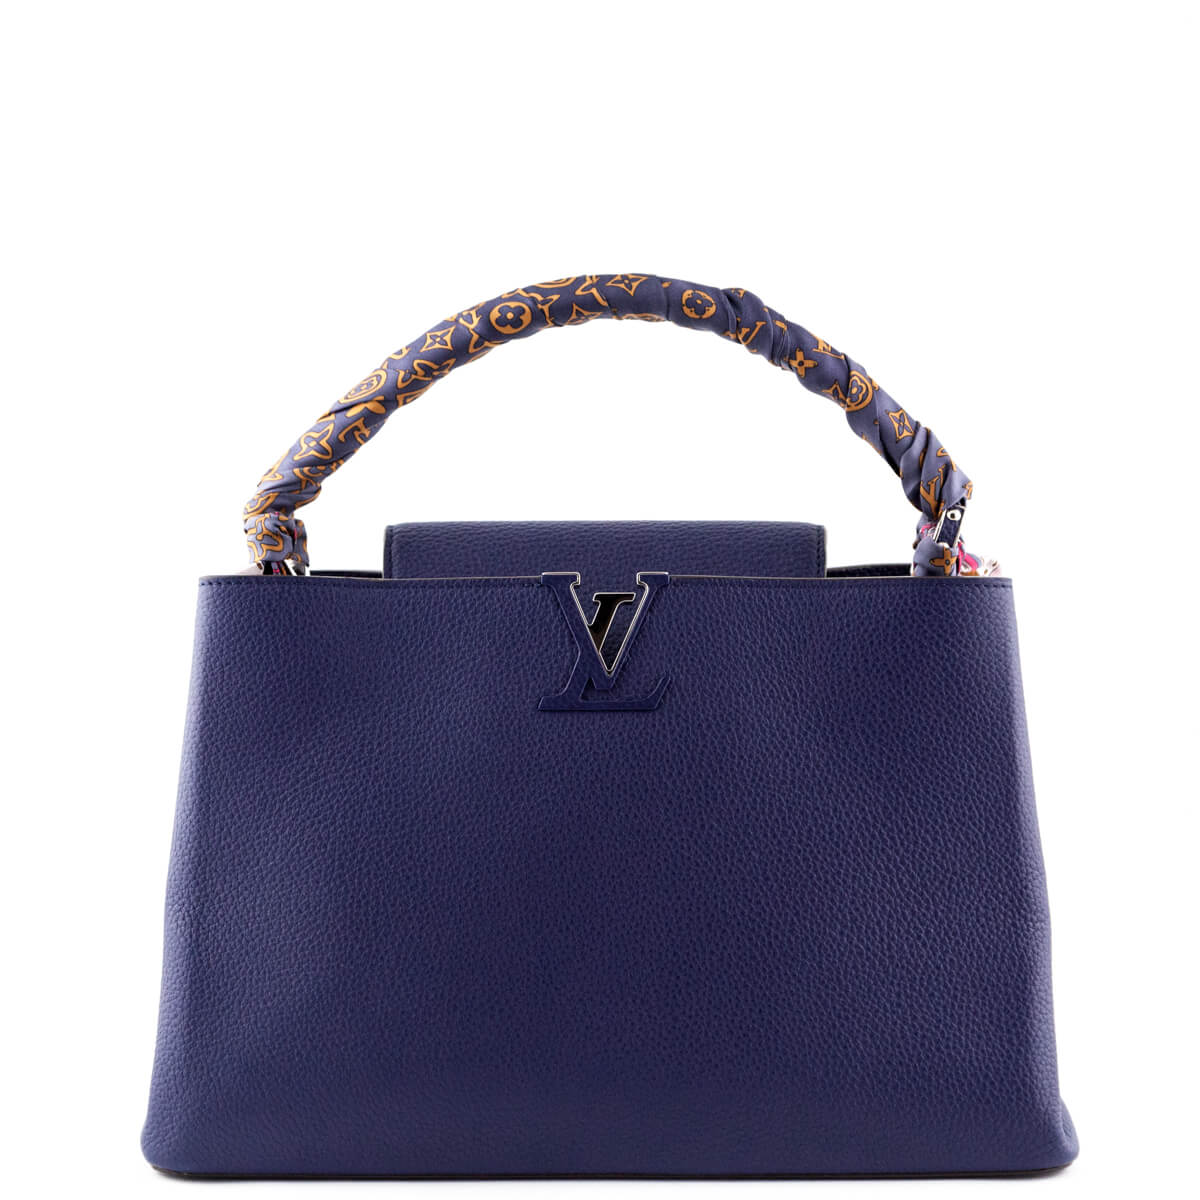 f07b774a369d Louis Vuitton Indigo Taurillon Capucines MM - LOVE that BAG - Preowned  Authentic Designer Handbags ...